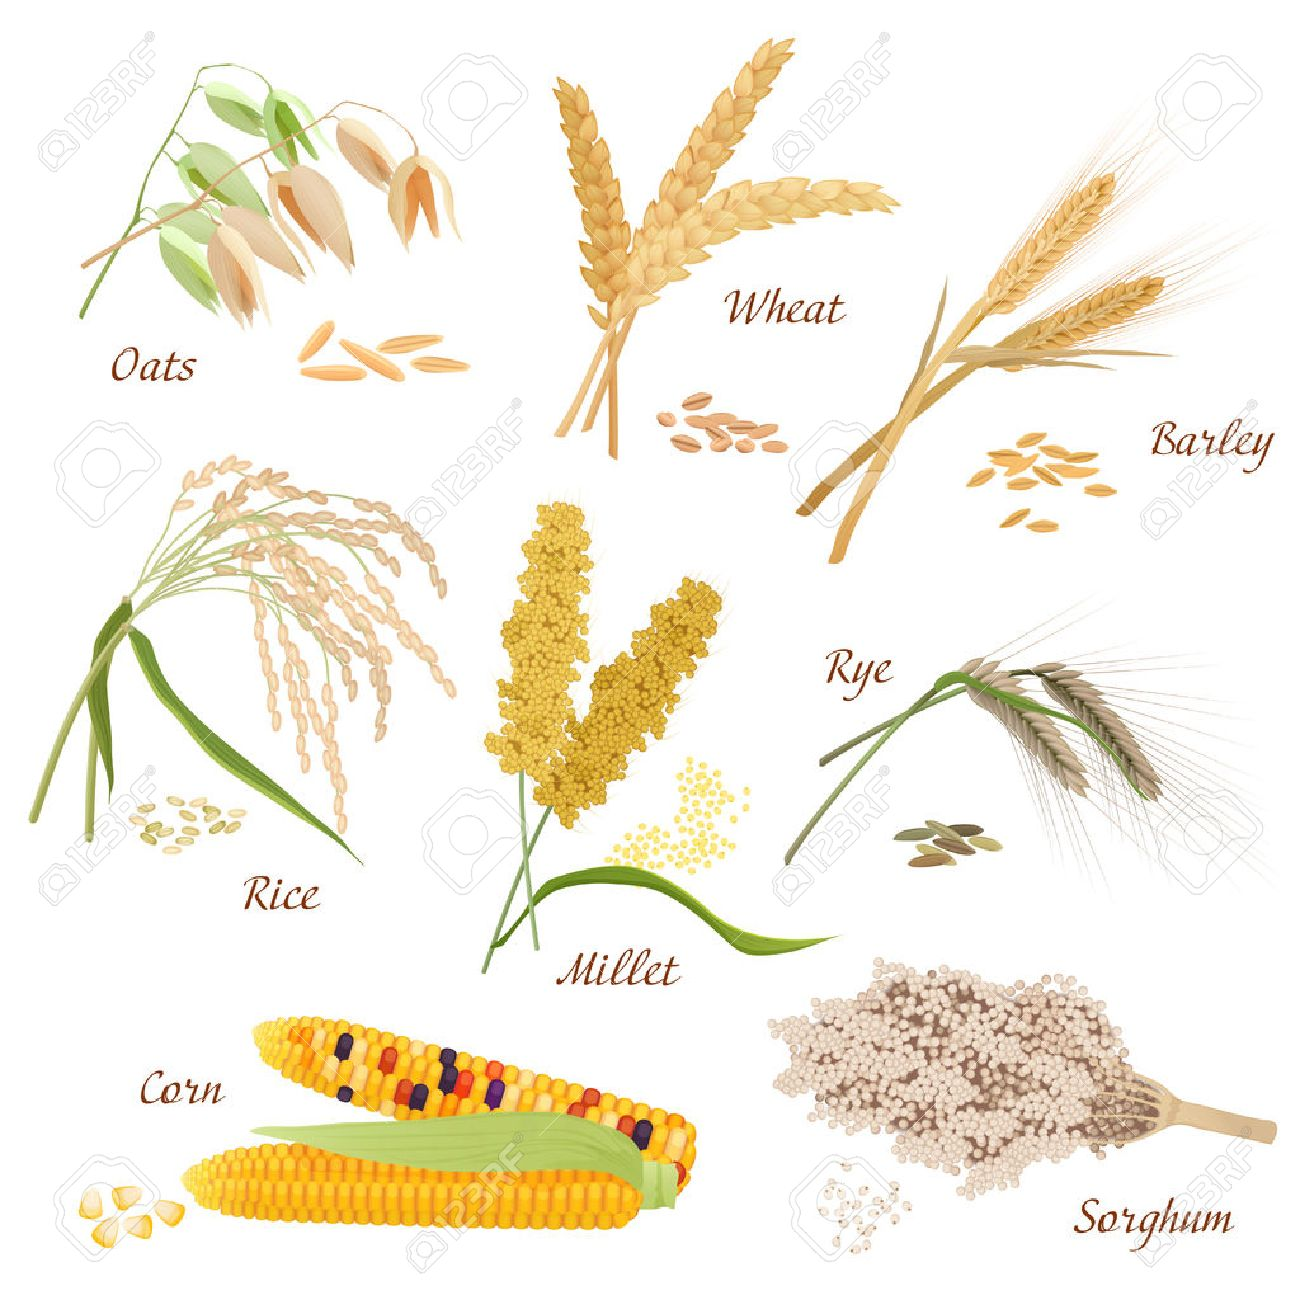 cereal plants vector icons illustrations oats wheat barley rye